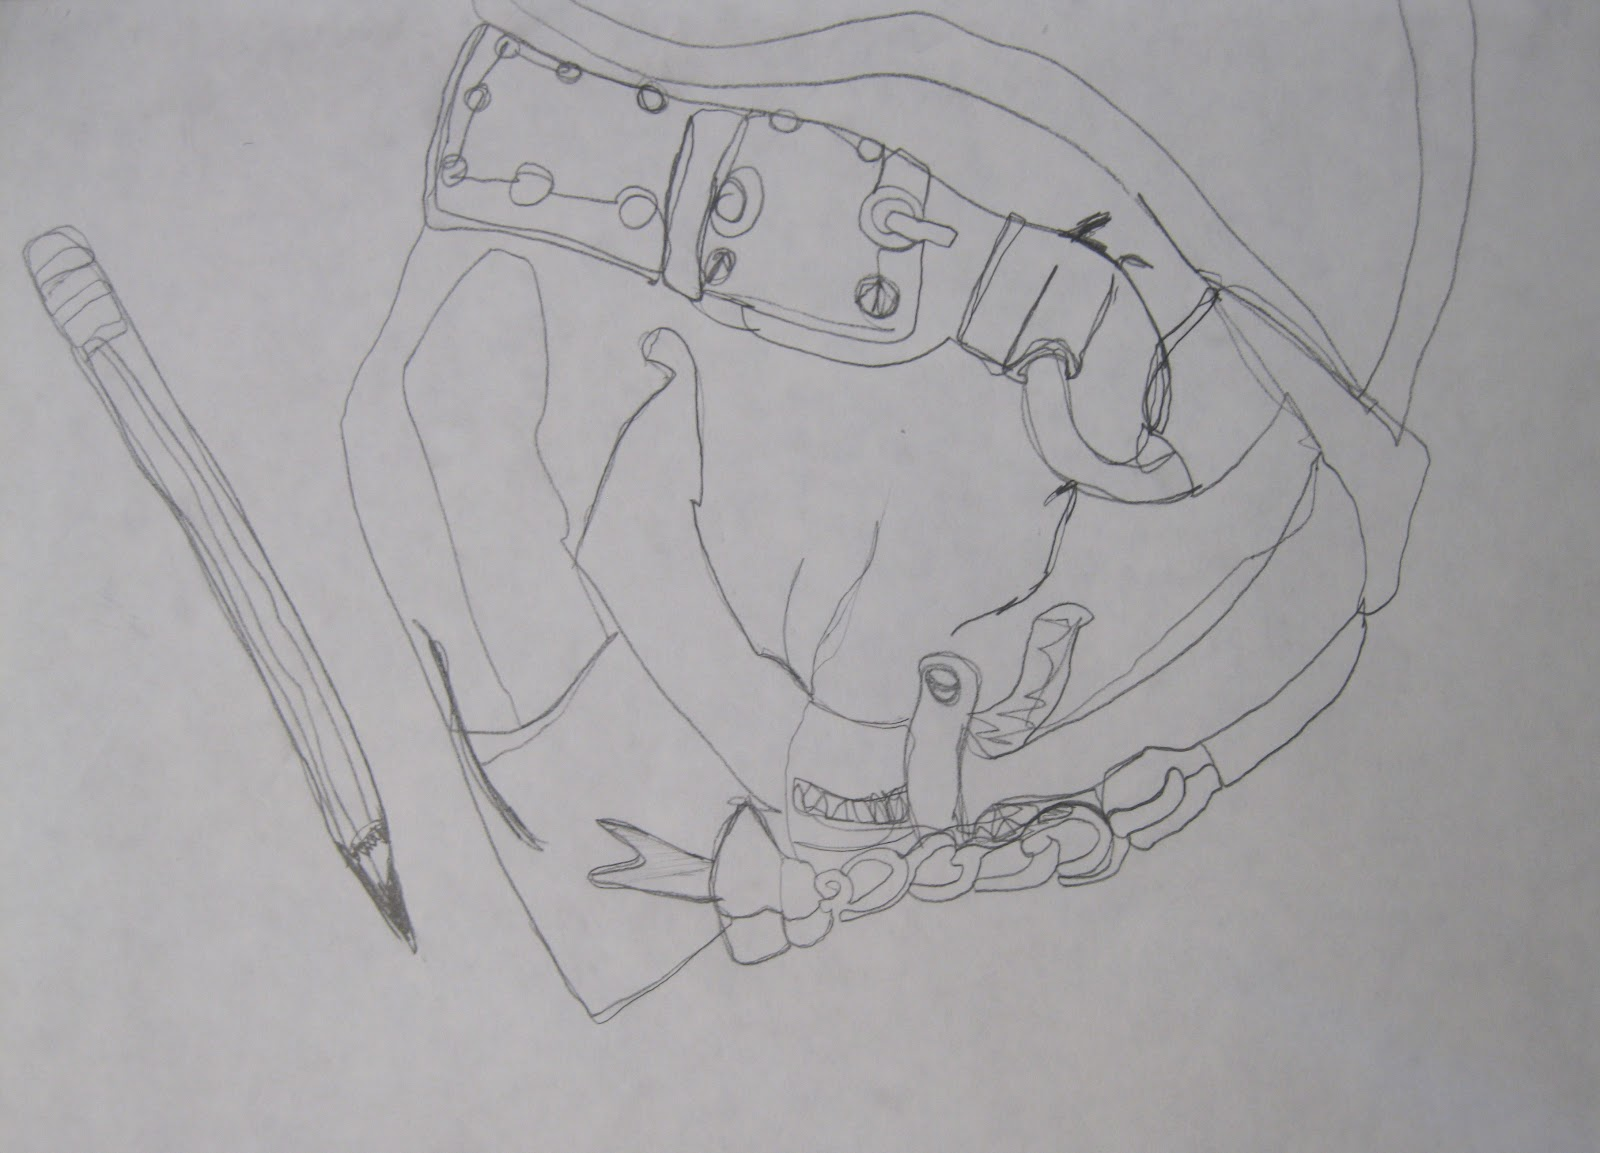 Contour Line Drawing Of A Person : Project art a day lesson i can t resist it contour line drawing